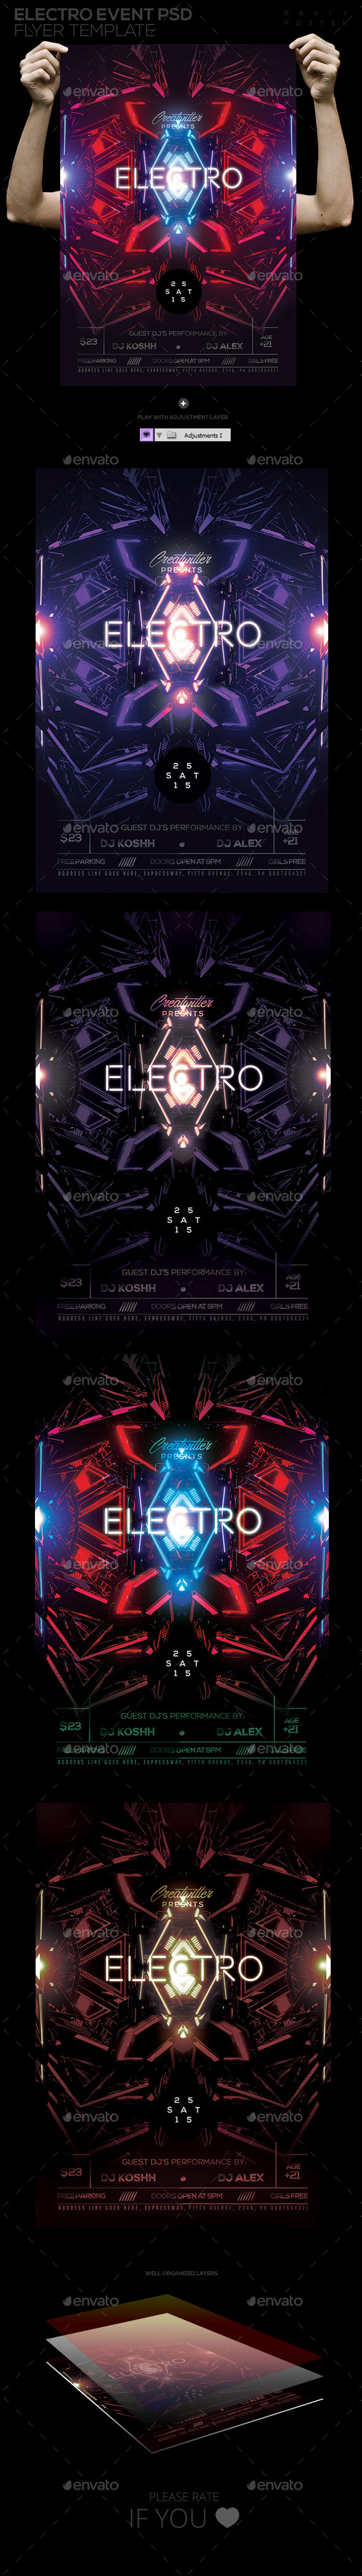 Electro Event Flyer / Poster Template - Clubs & Parties Events